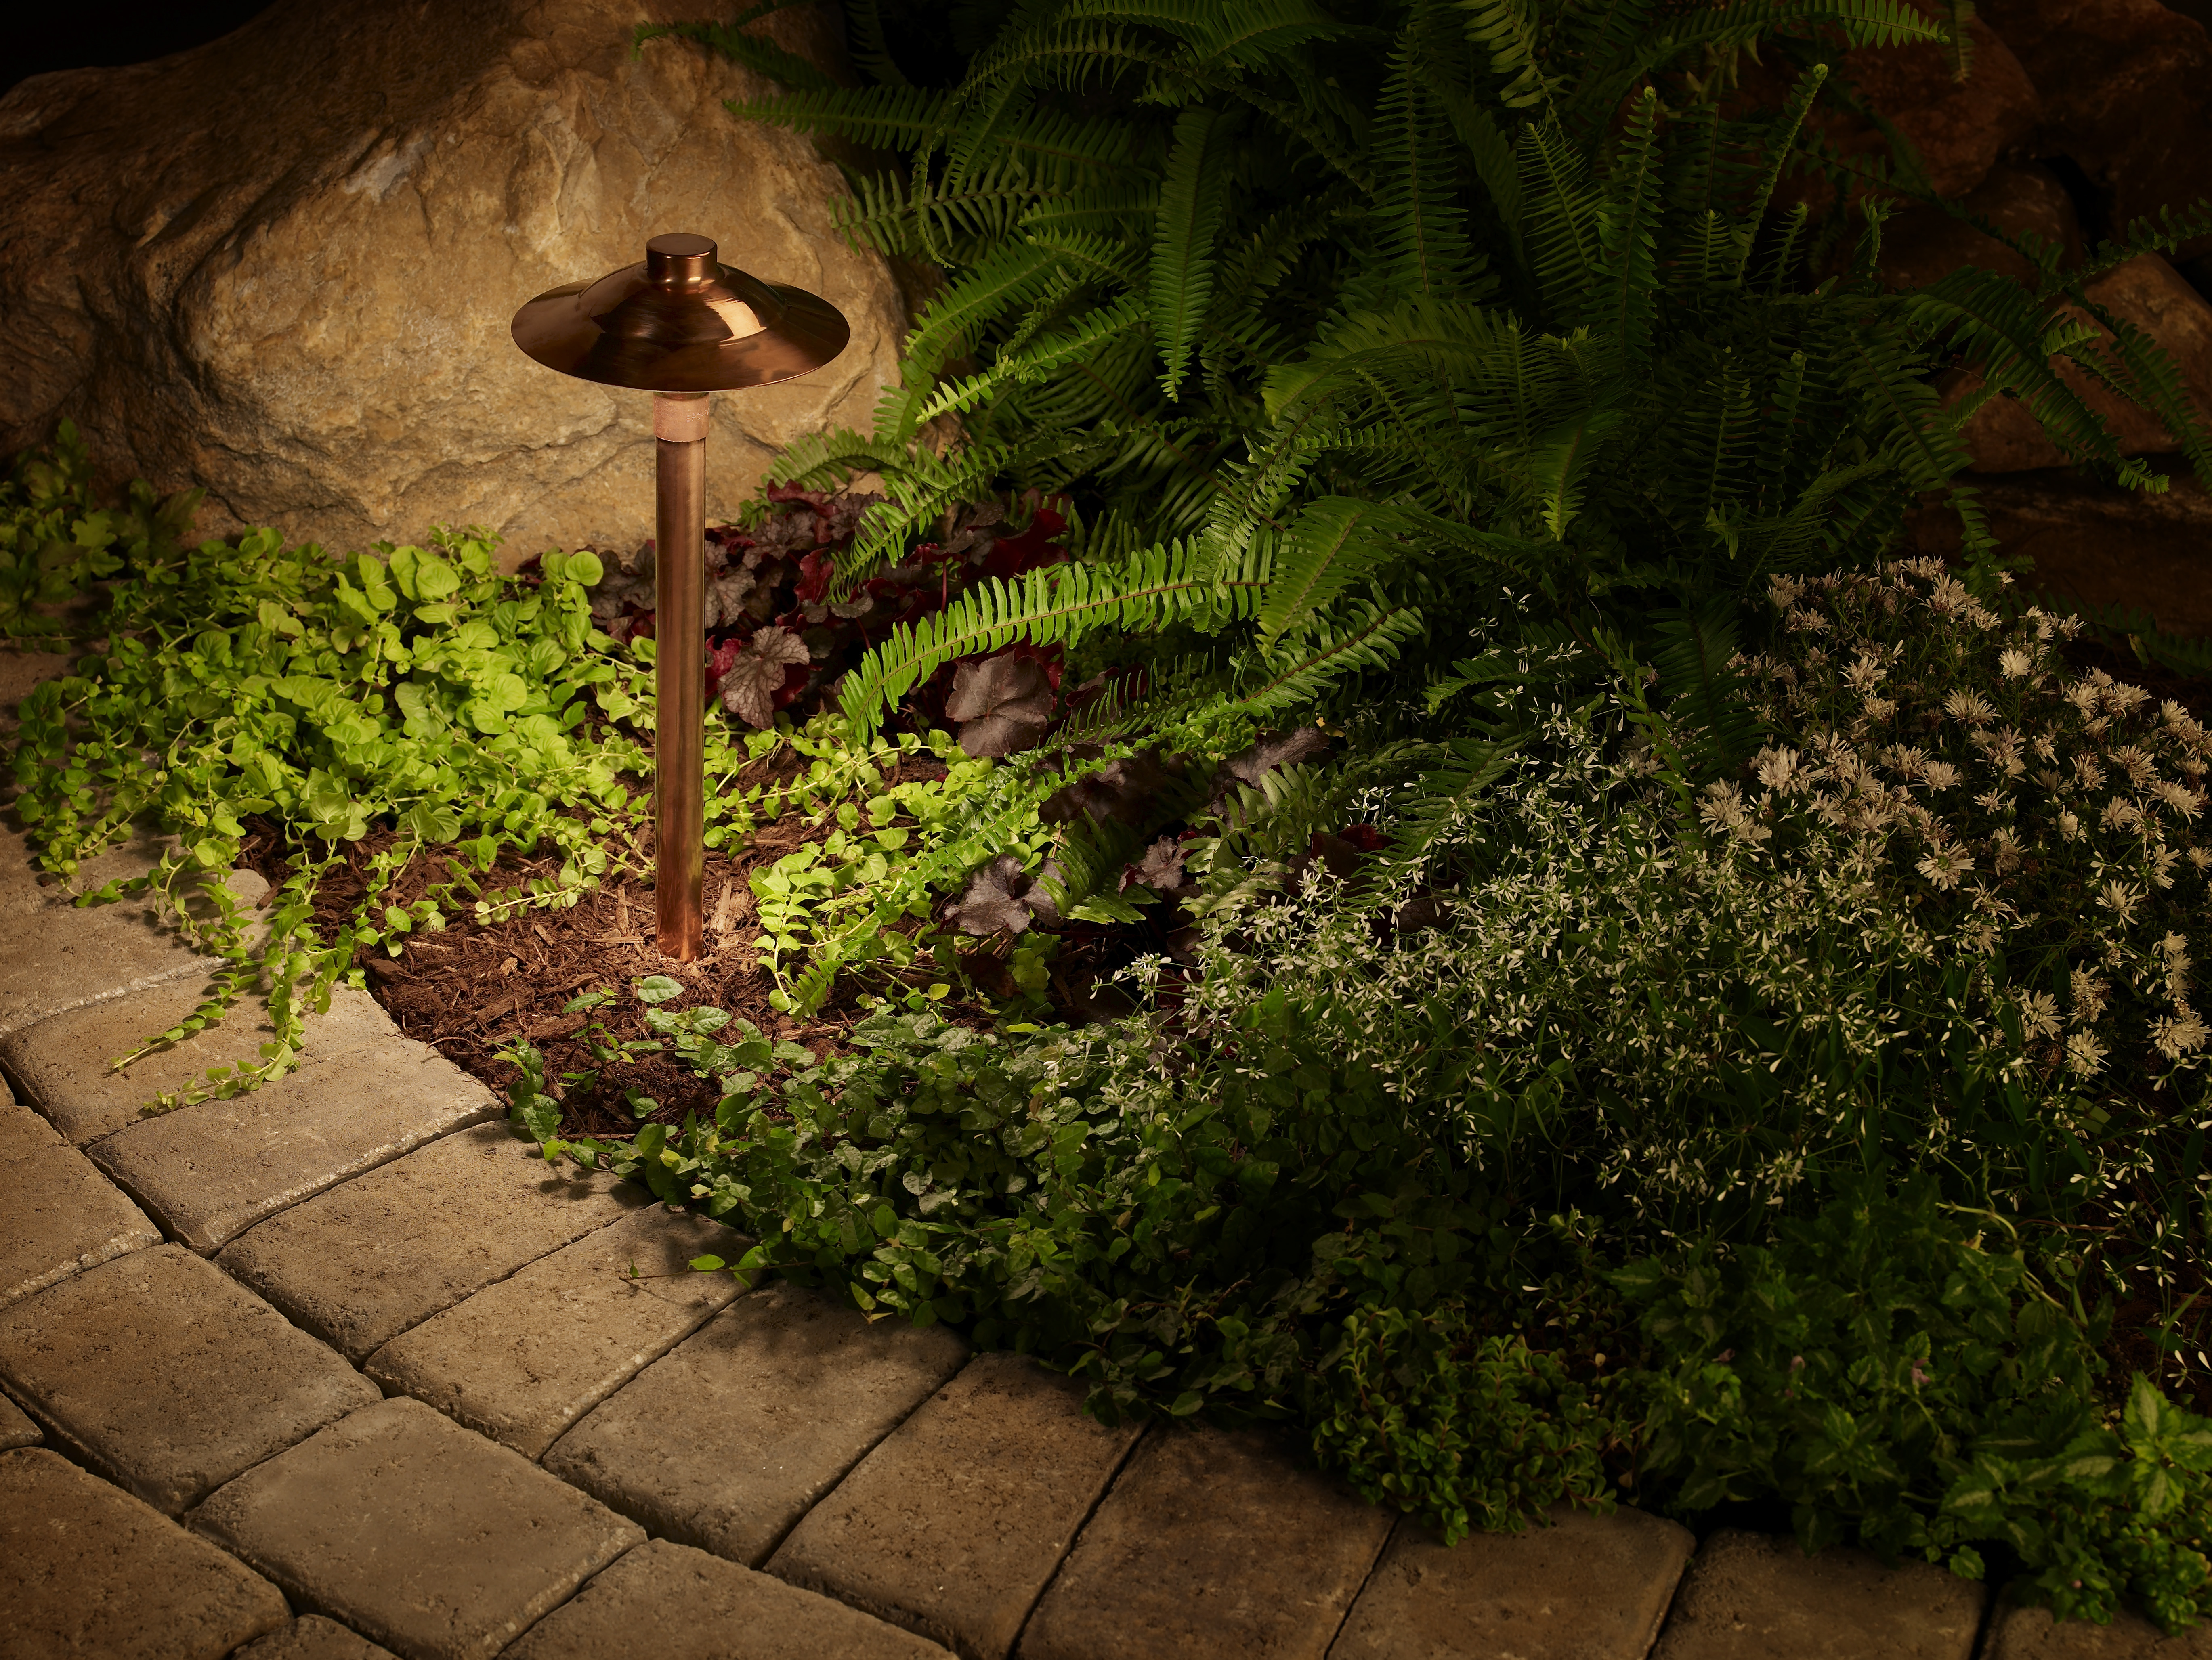 1000+ images about Outdoor lighting on Pinterest.